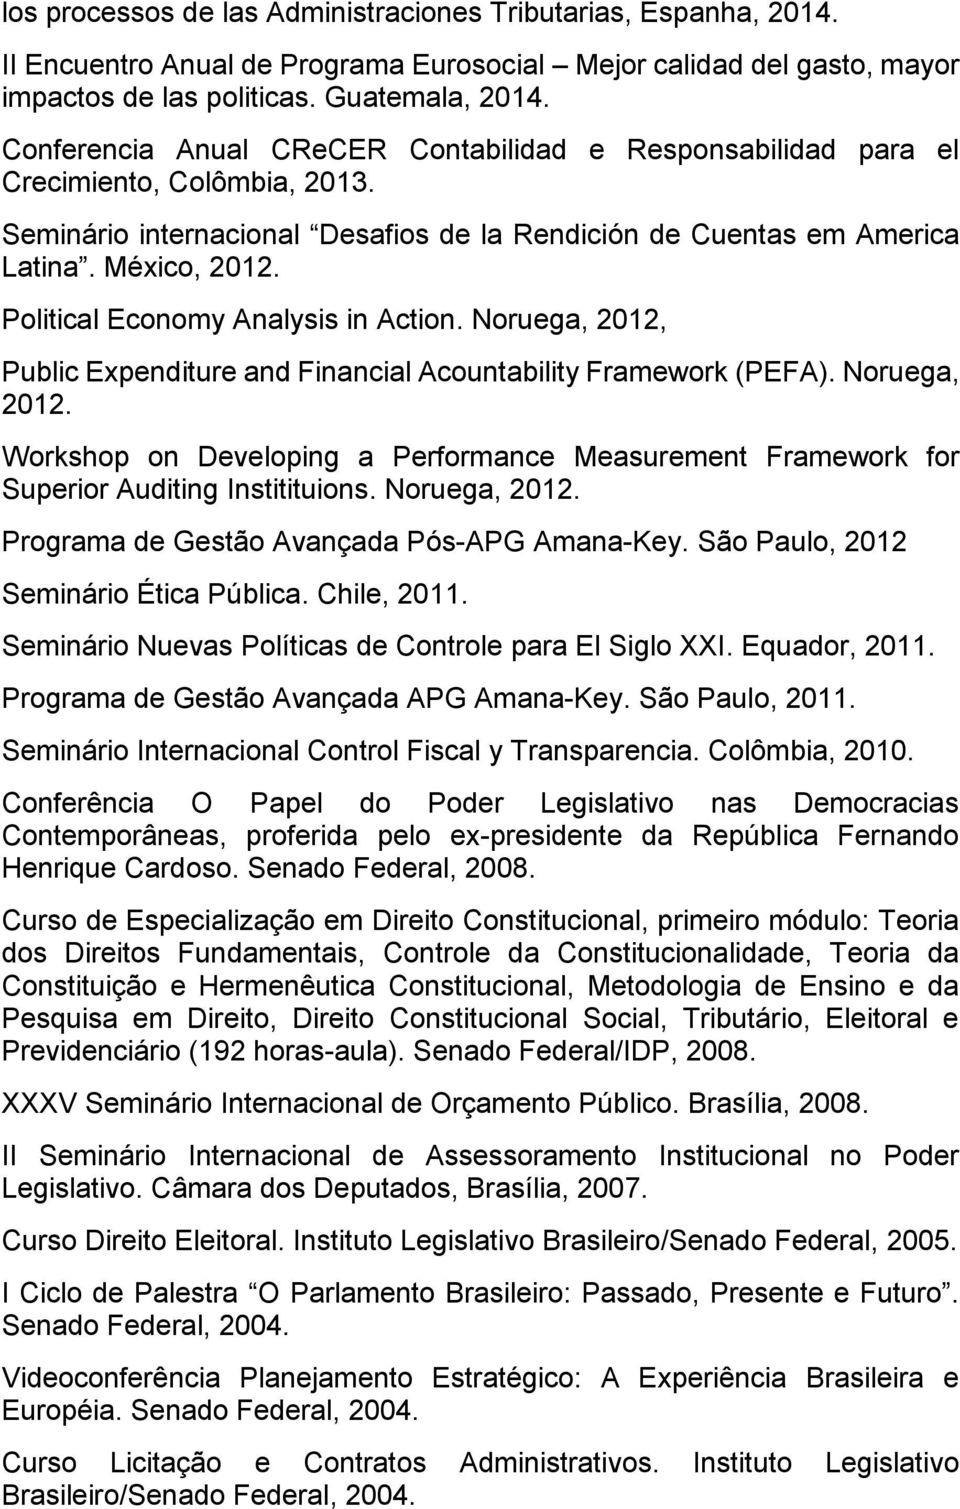 Political Economy Analysis in Action. Noruega, 2012, Public Expenditure and Financial Acountability Framework (PEFA). Noruega, 2012. Workshop on Developing a Performance Measurement Framework for Superior Auditing Institituions.